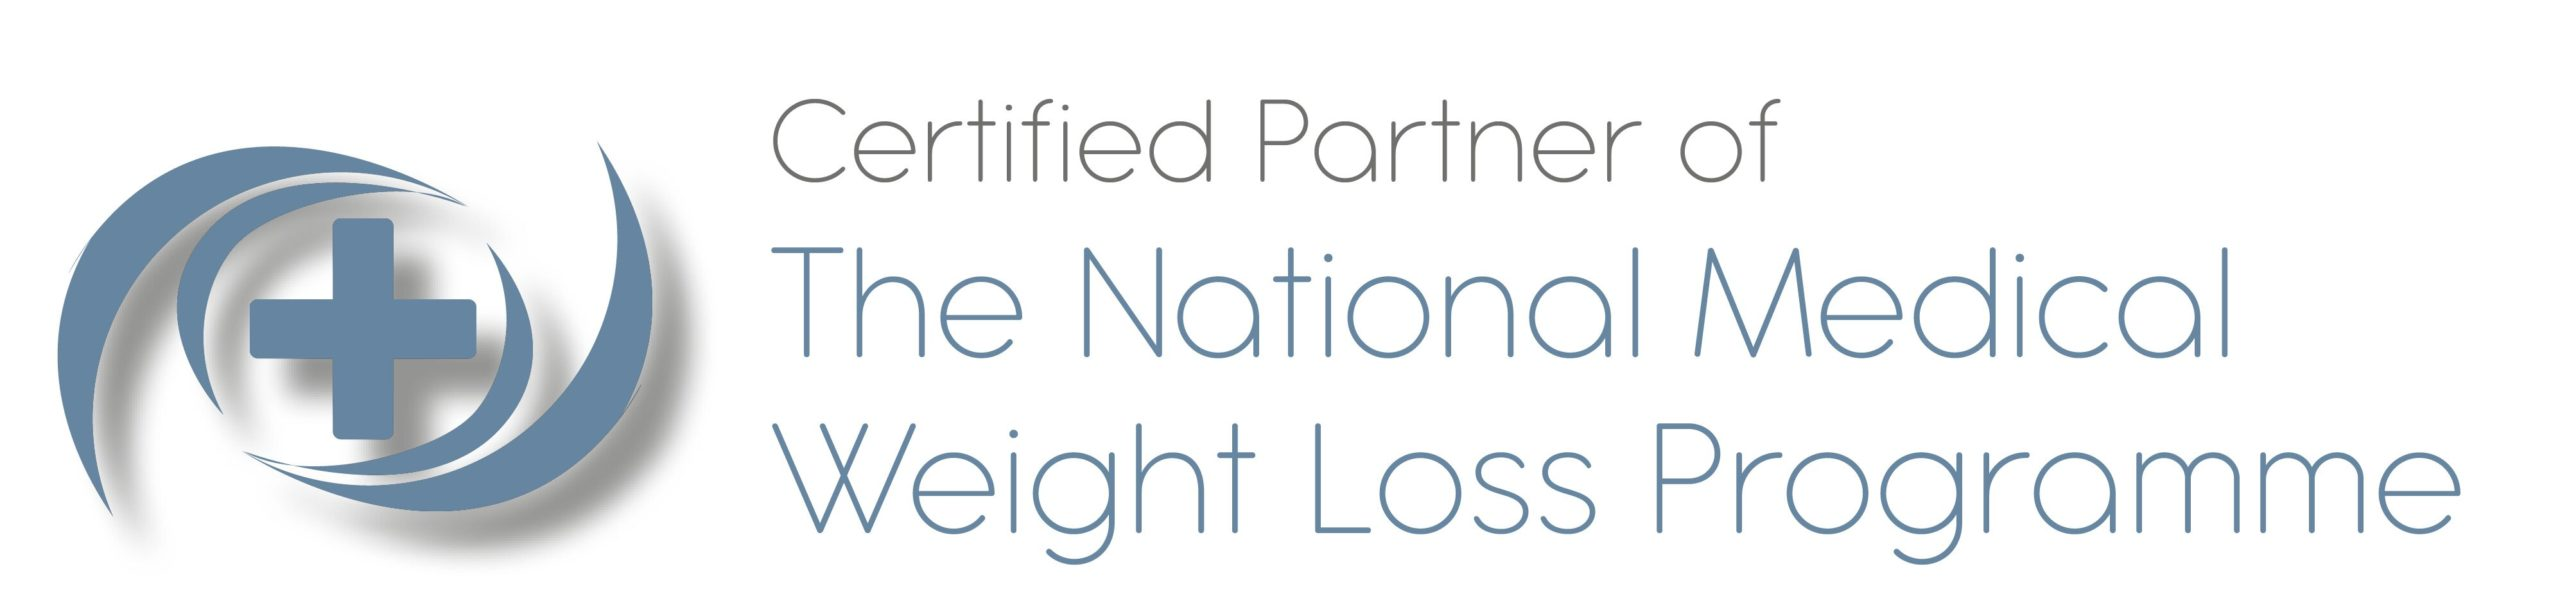 the national medical weight loss programme